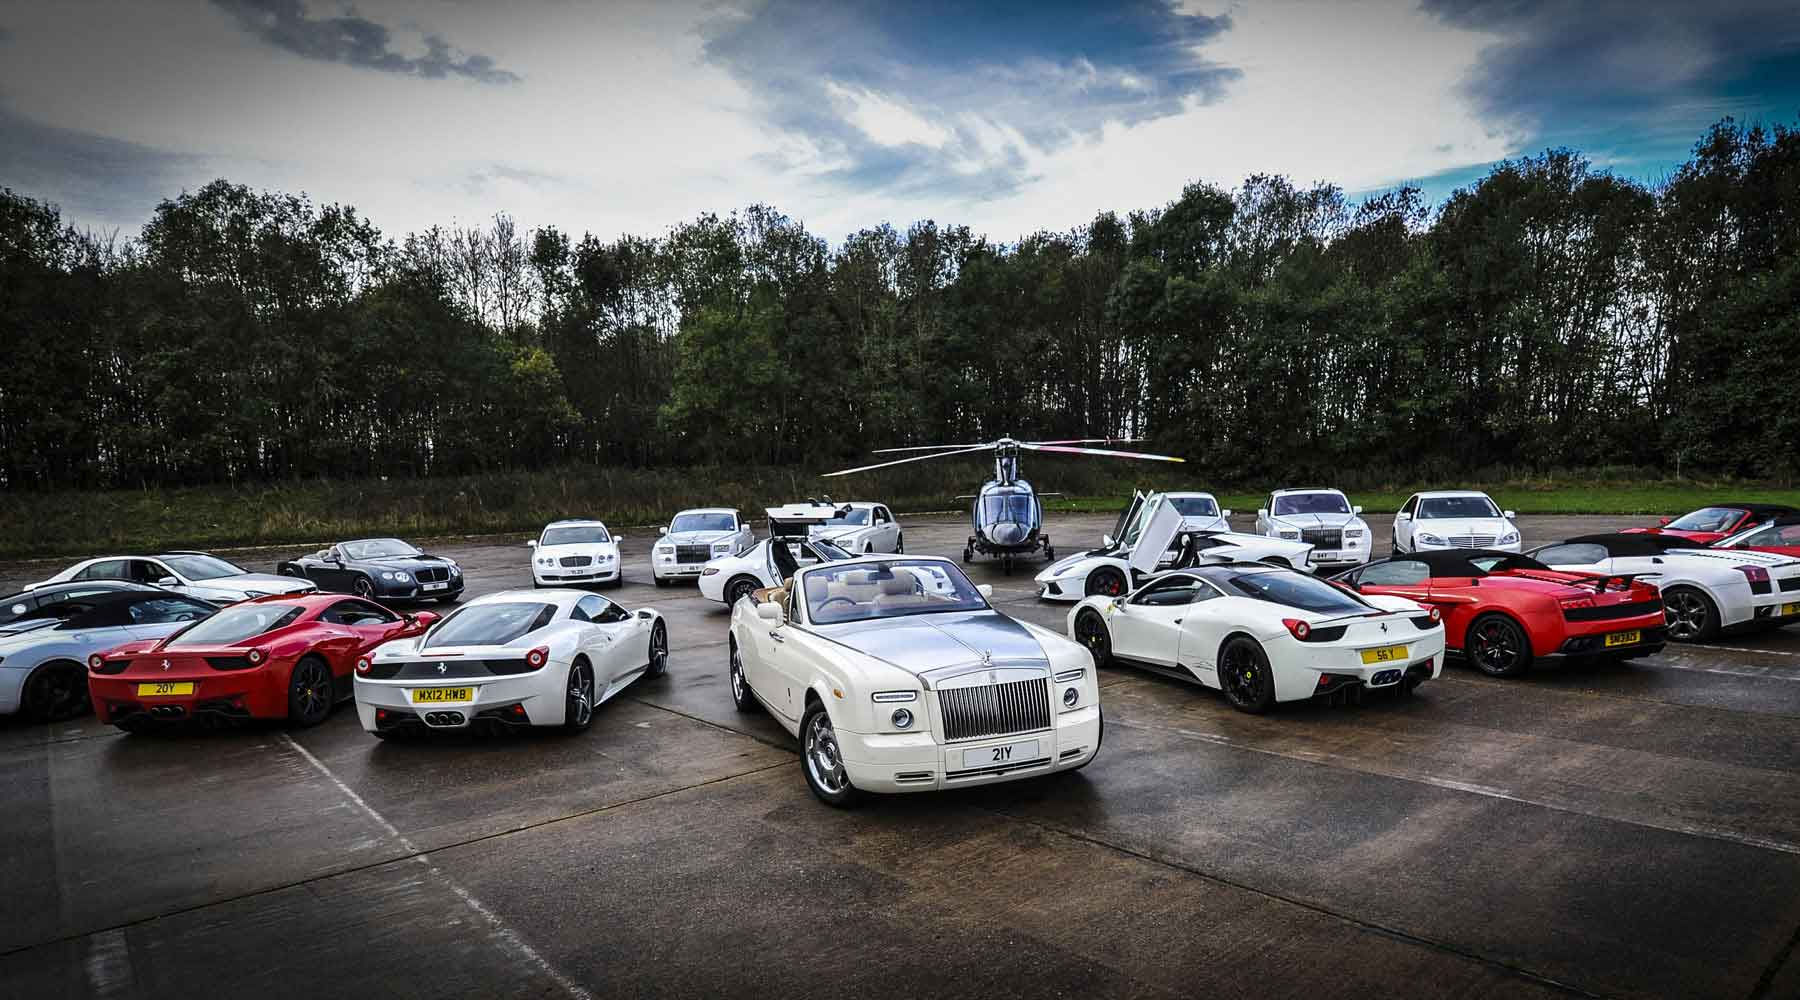 How To Maintain Rented LuxuryCars Safely ArtSysteme - Luxury cars